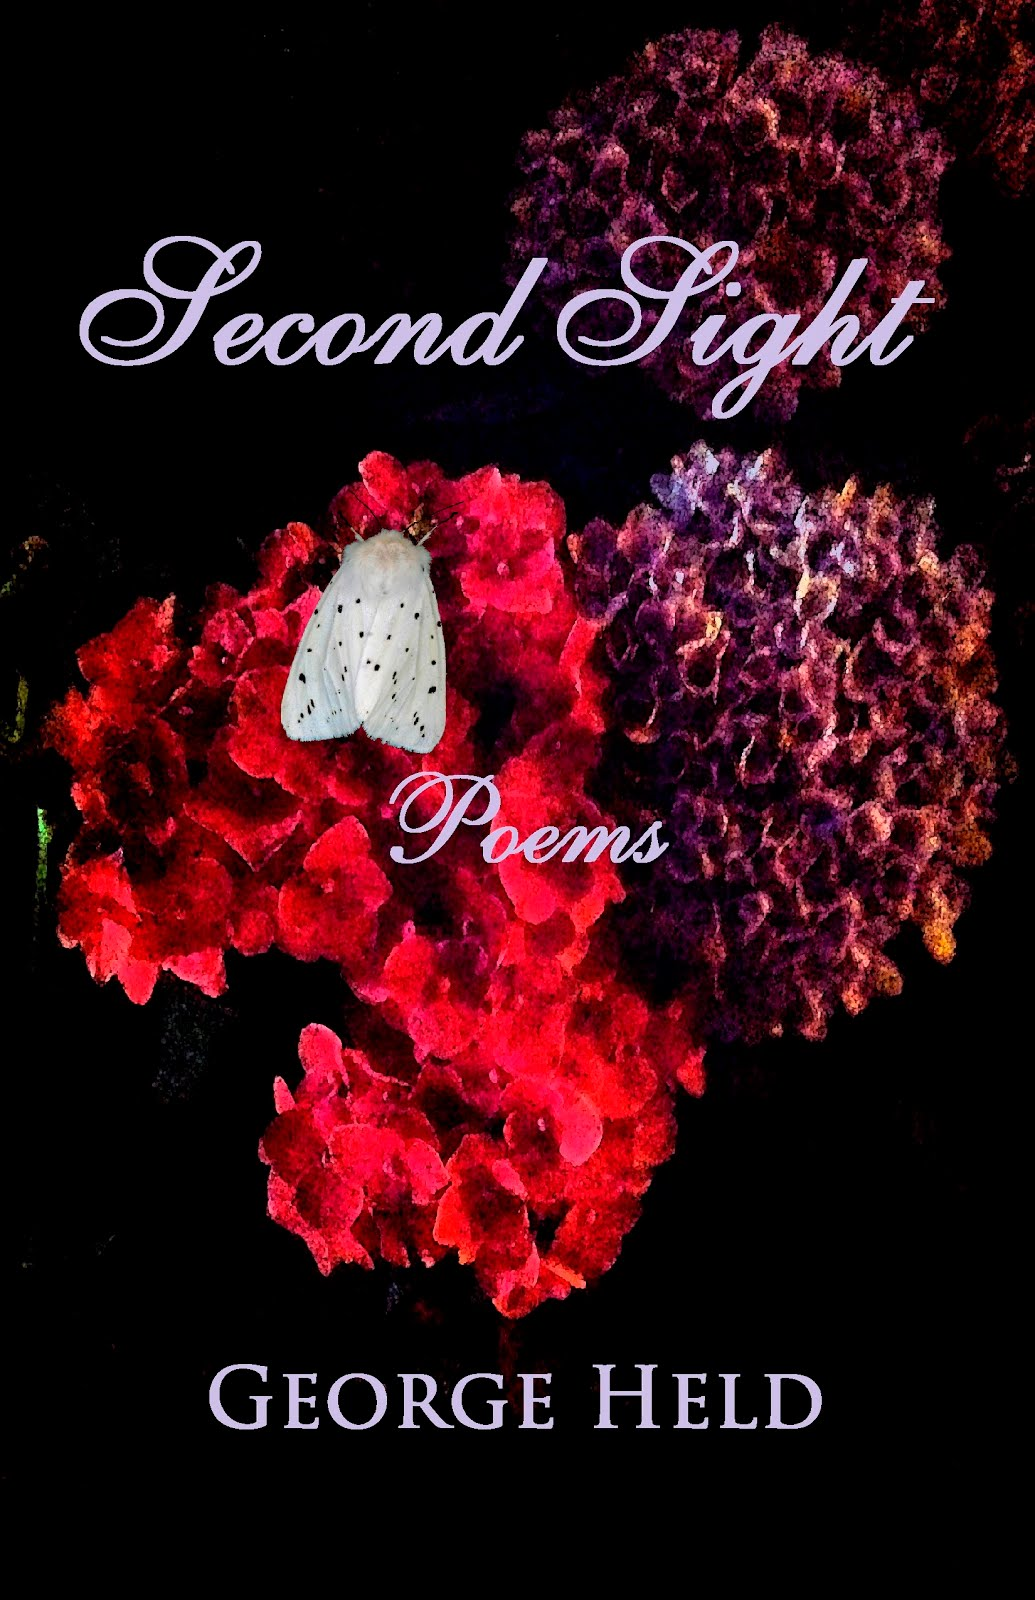 Autumn Reads: More Poetry by George Held: Second Sight, Available September 2019.